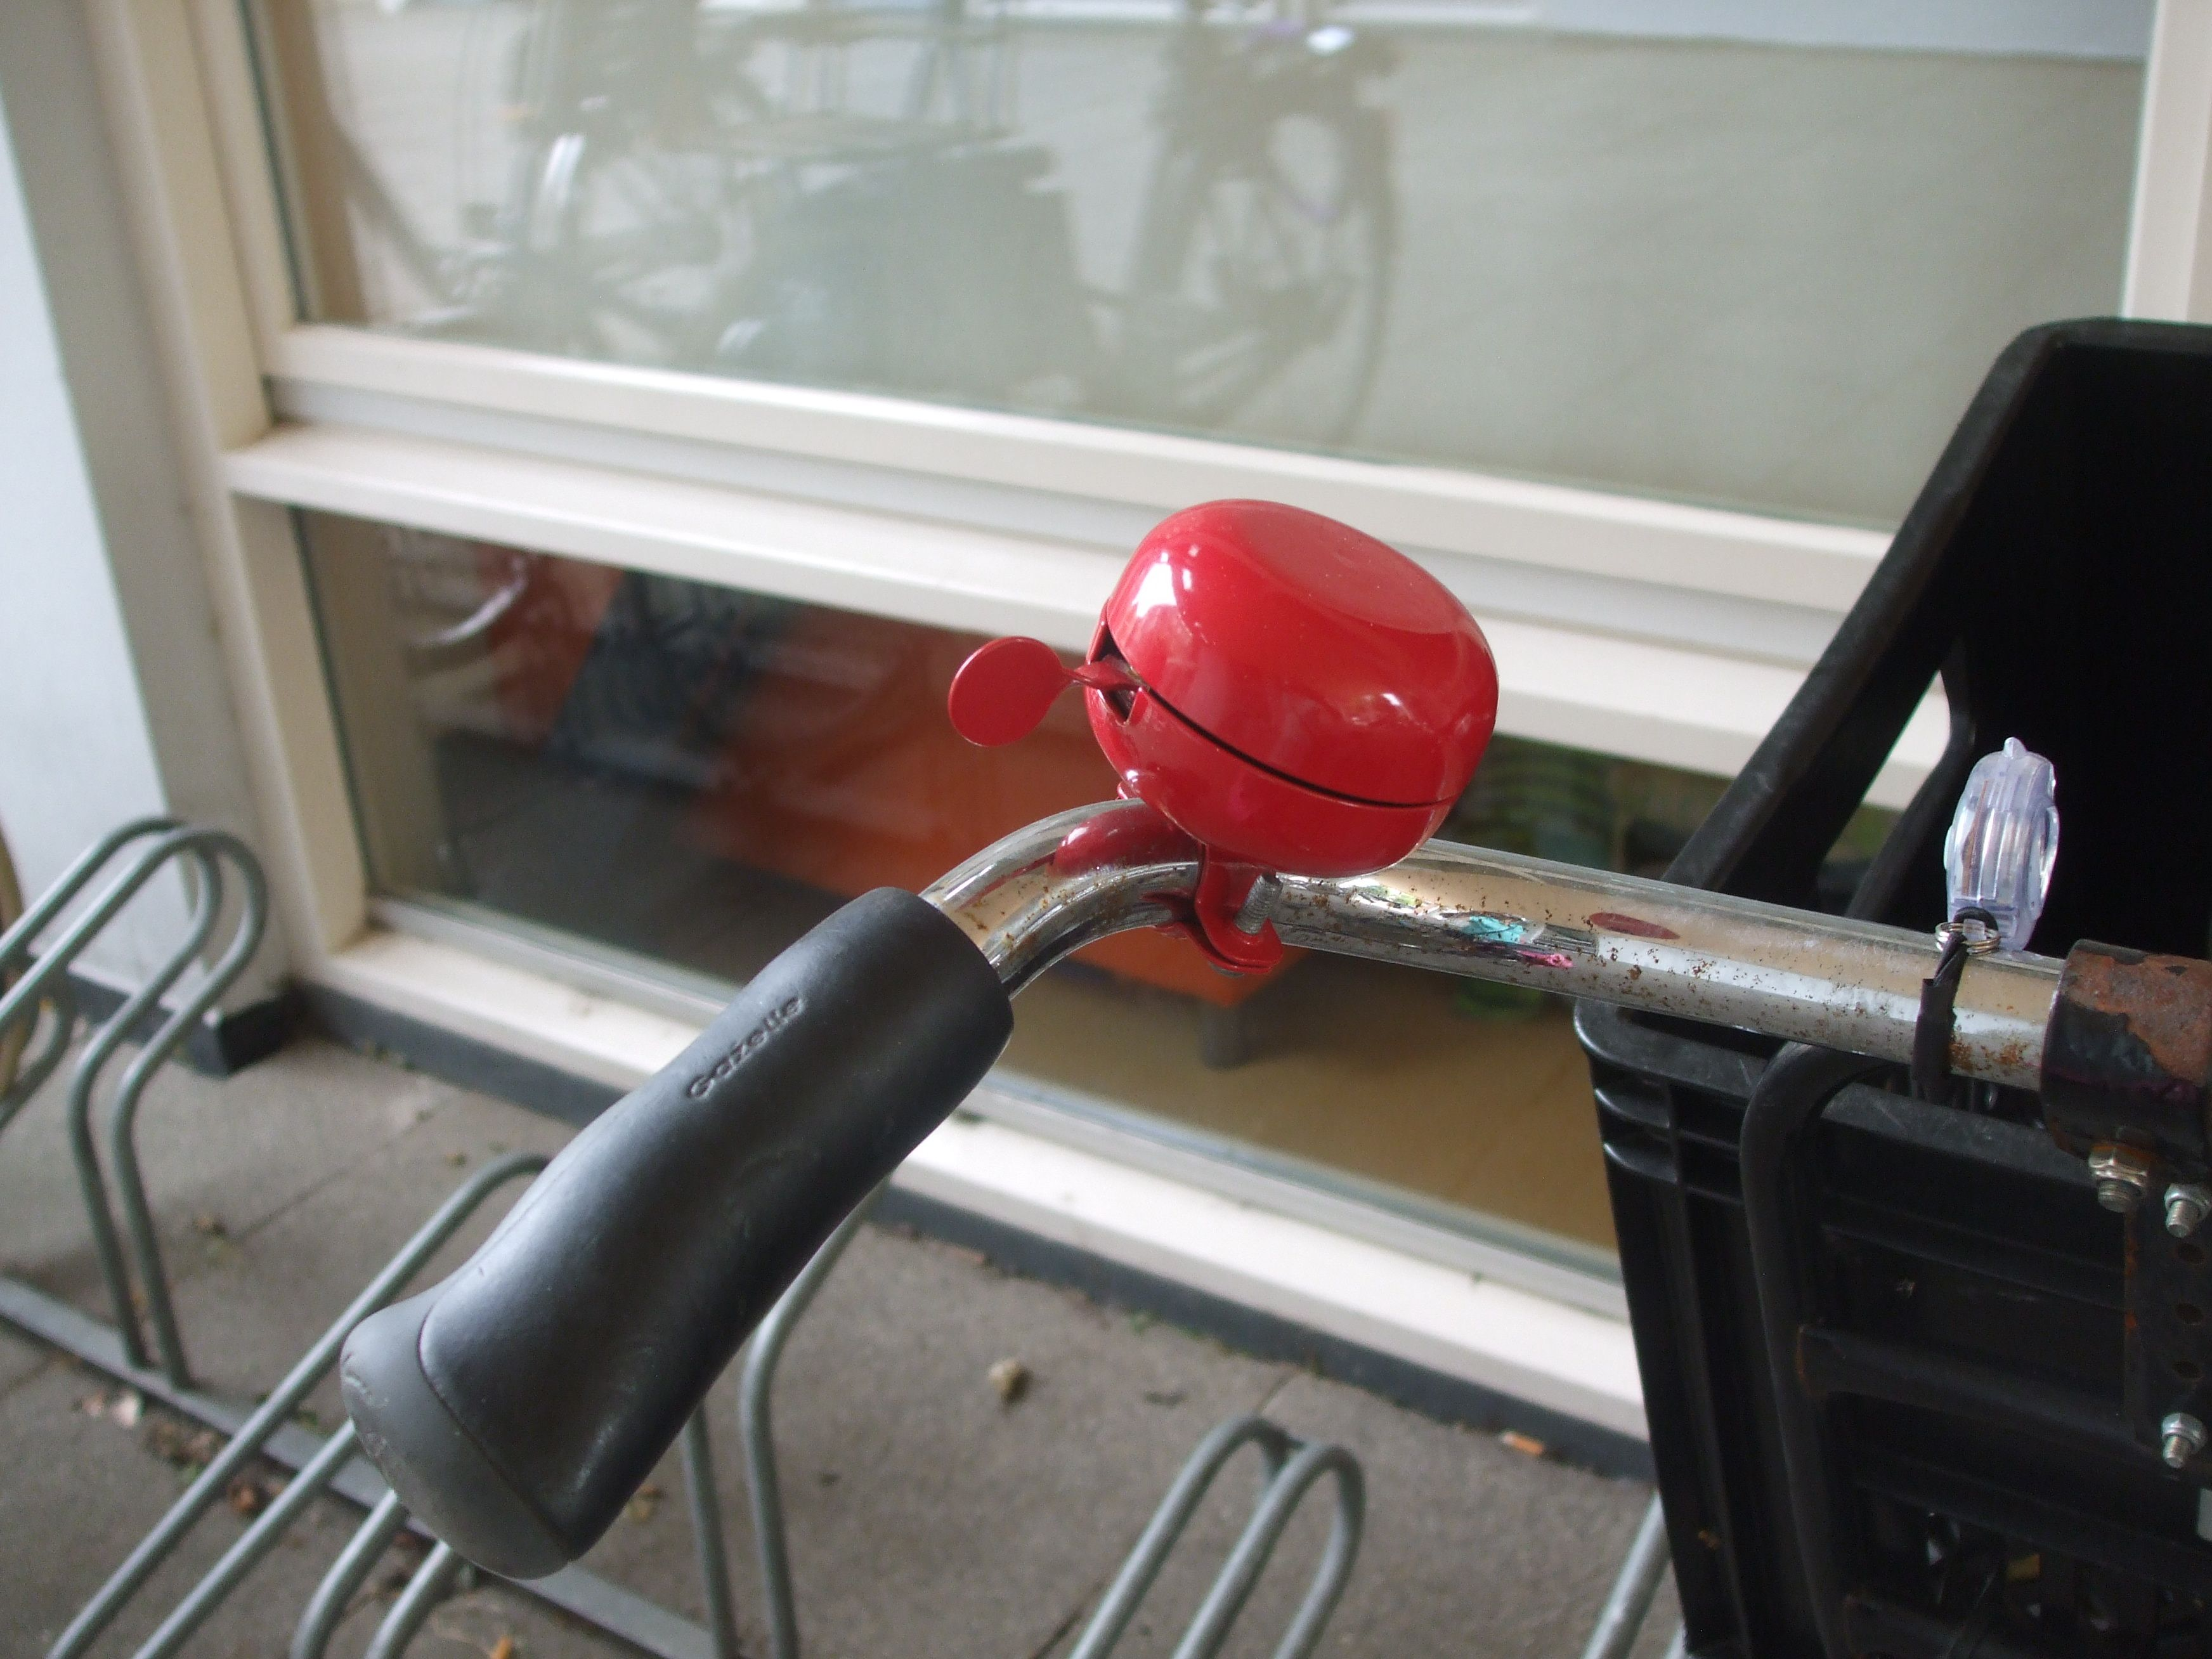 small red bike bell